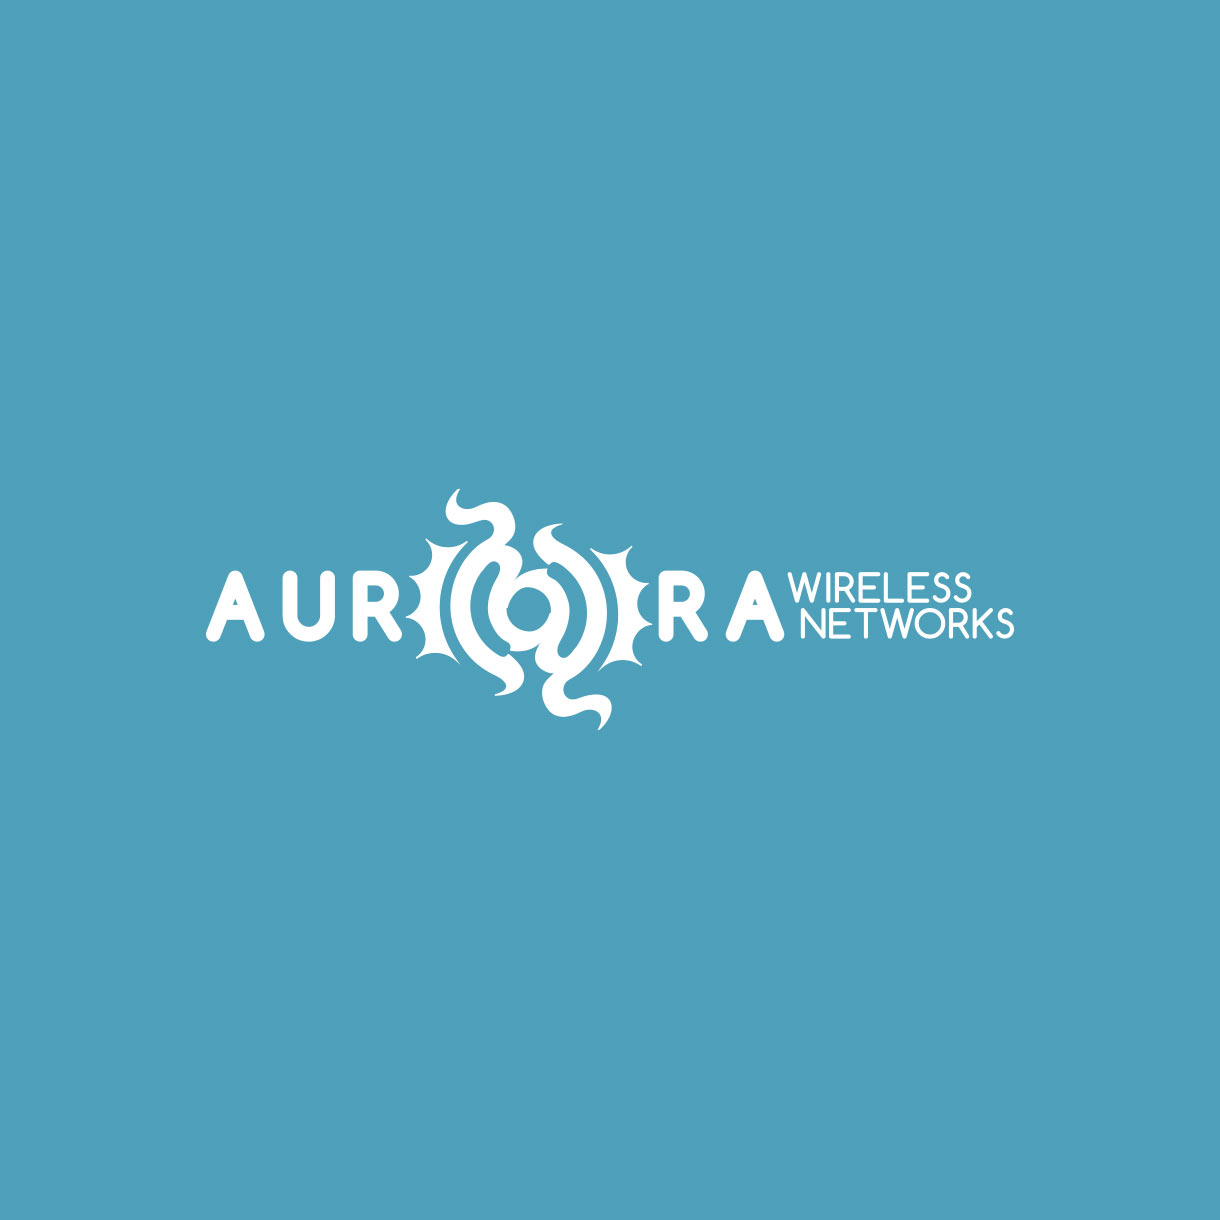 Aurora Wireless Networks Icon